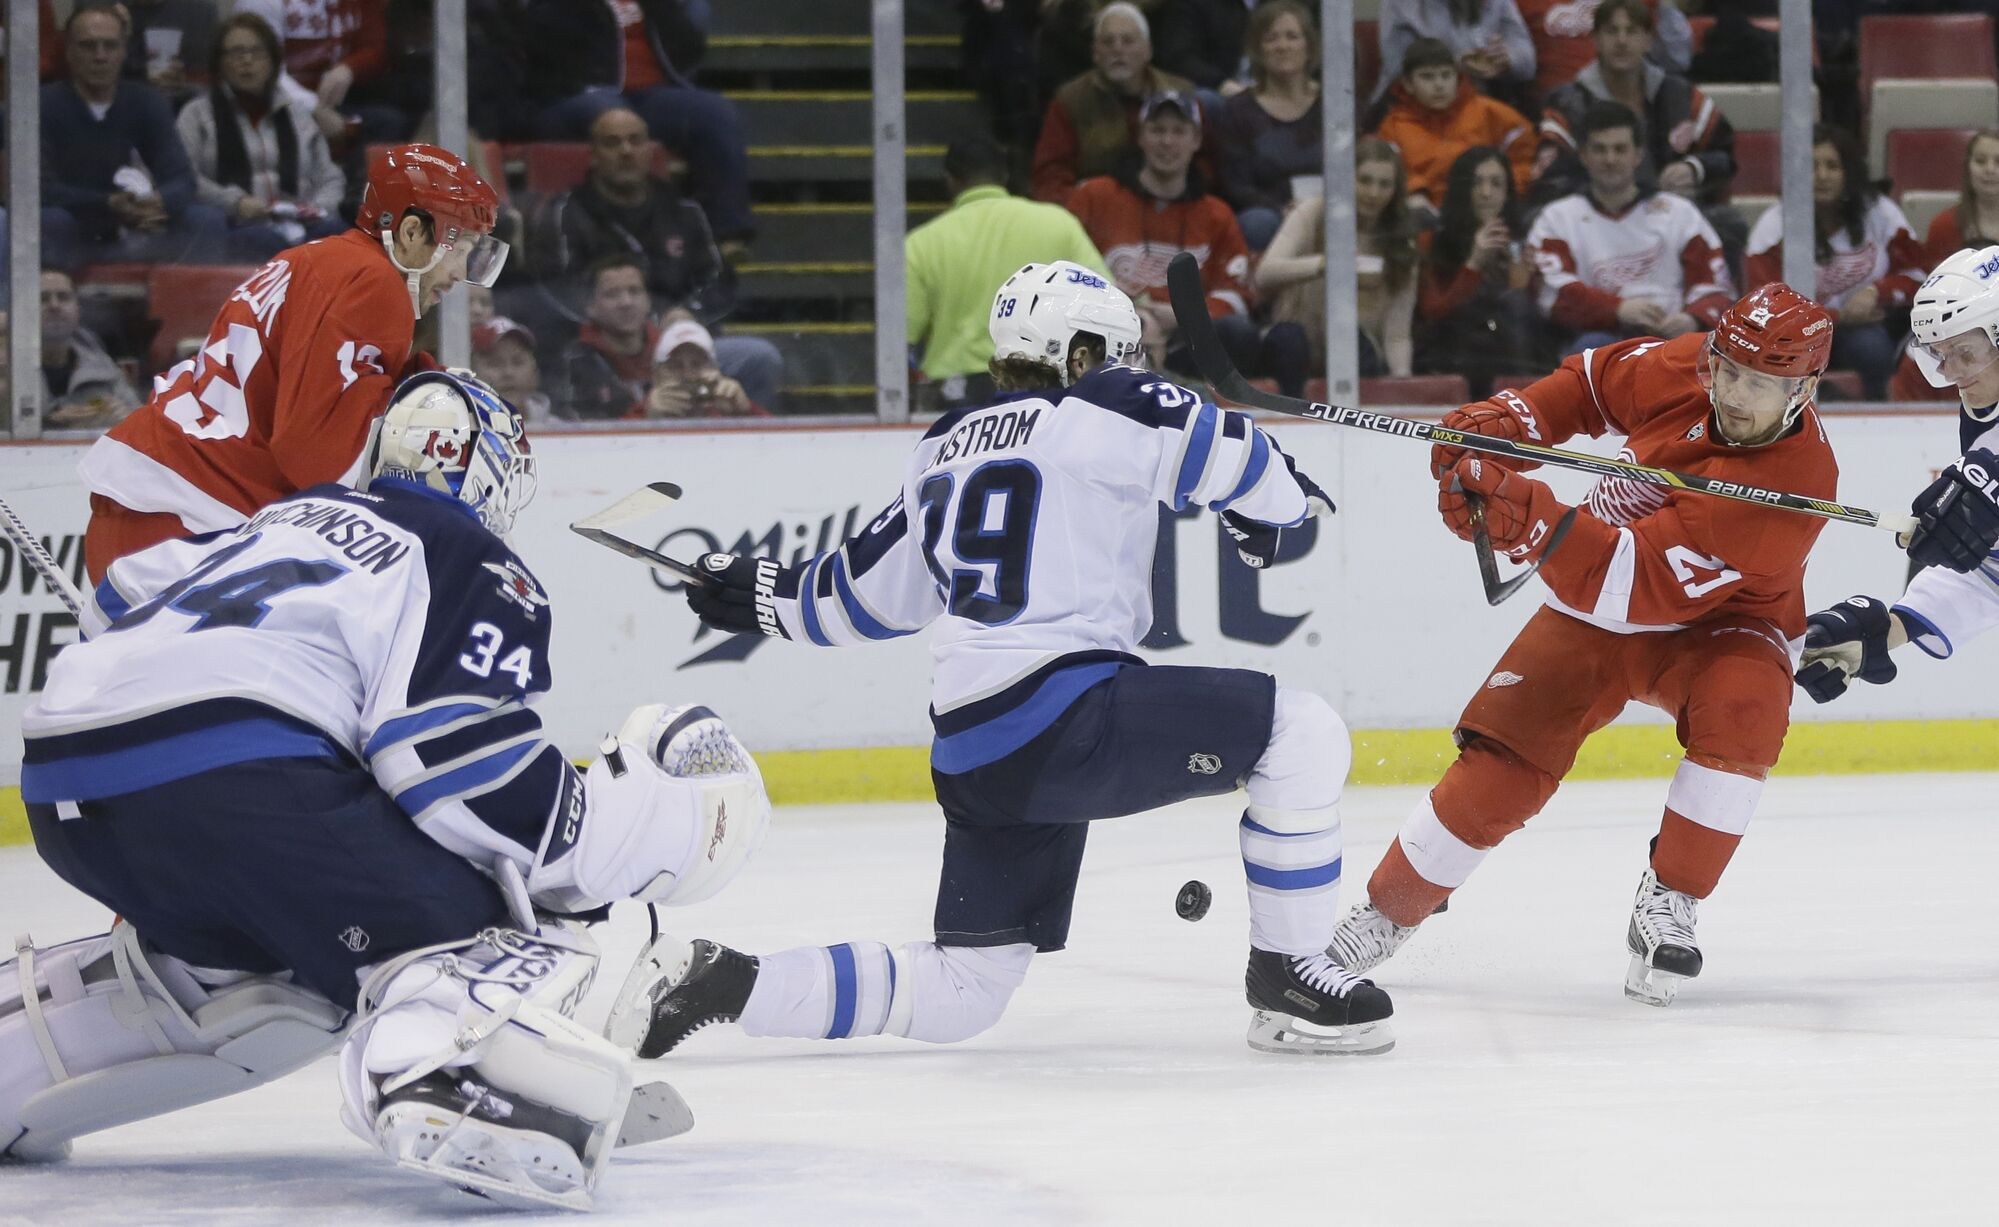 Toby Enstrom (centre) drops in front of a shot by Red Wings forward Tomas Tatar.